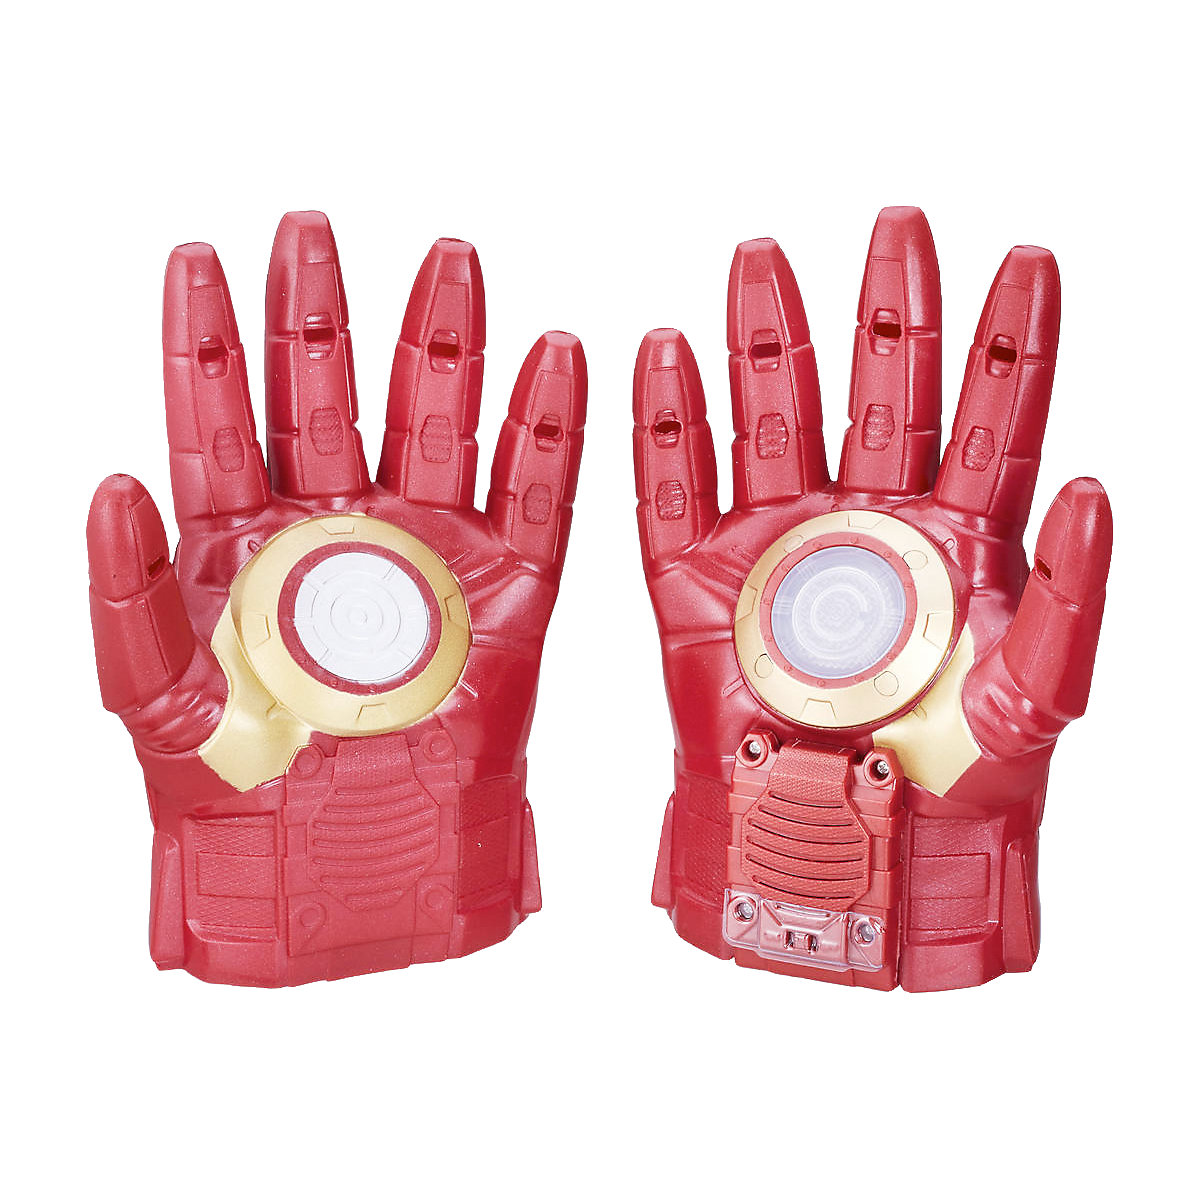 Hasbro  Costume Props 5104310 playsets childrens costumes aprilpromo Avengers Marvel Iron Man avengers 2 age of ultron iron man mark 43 pvc action figure collectible model toy 9 23cm kt056